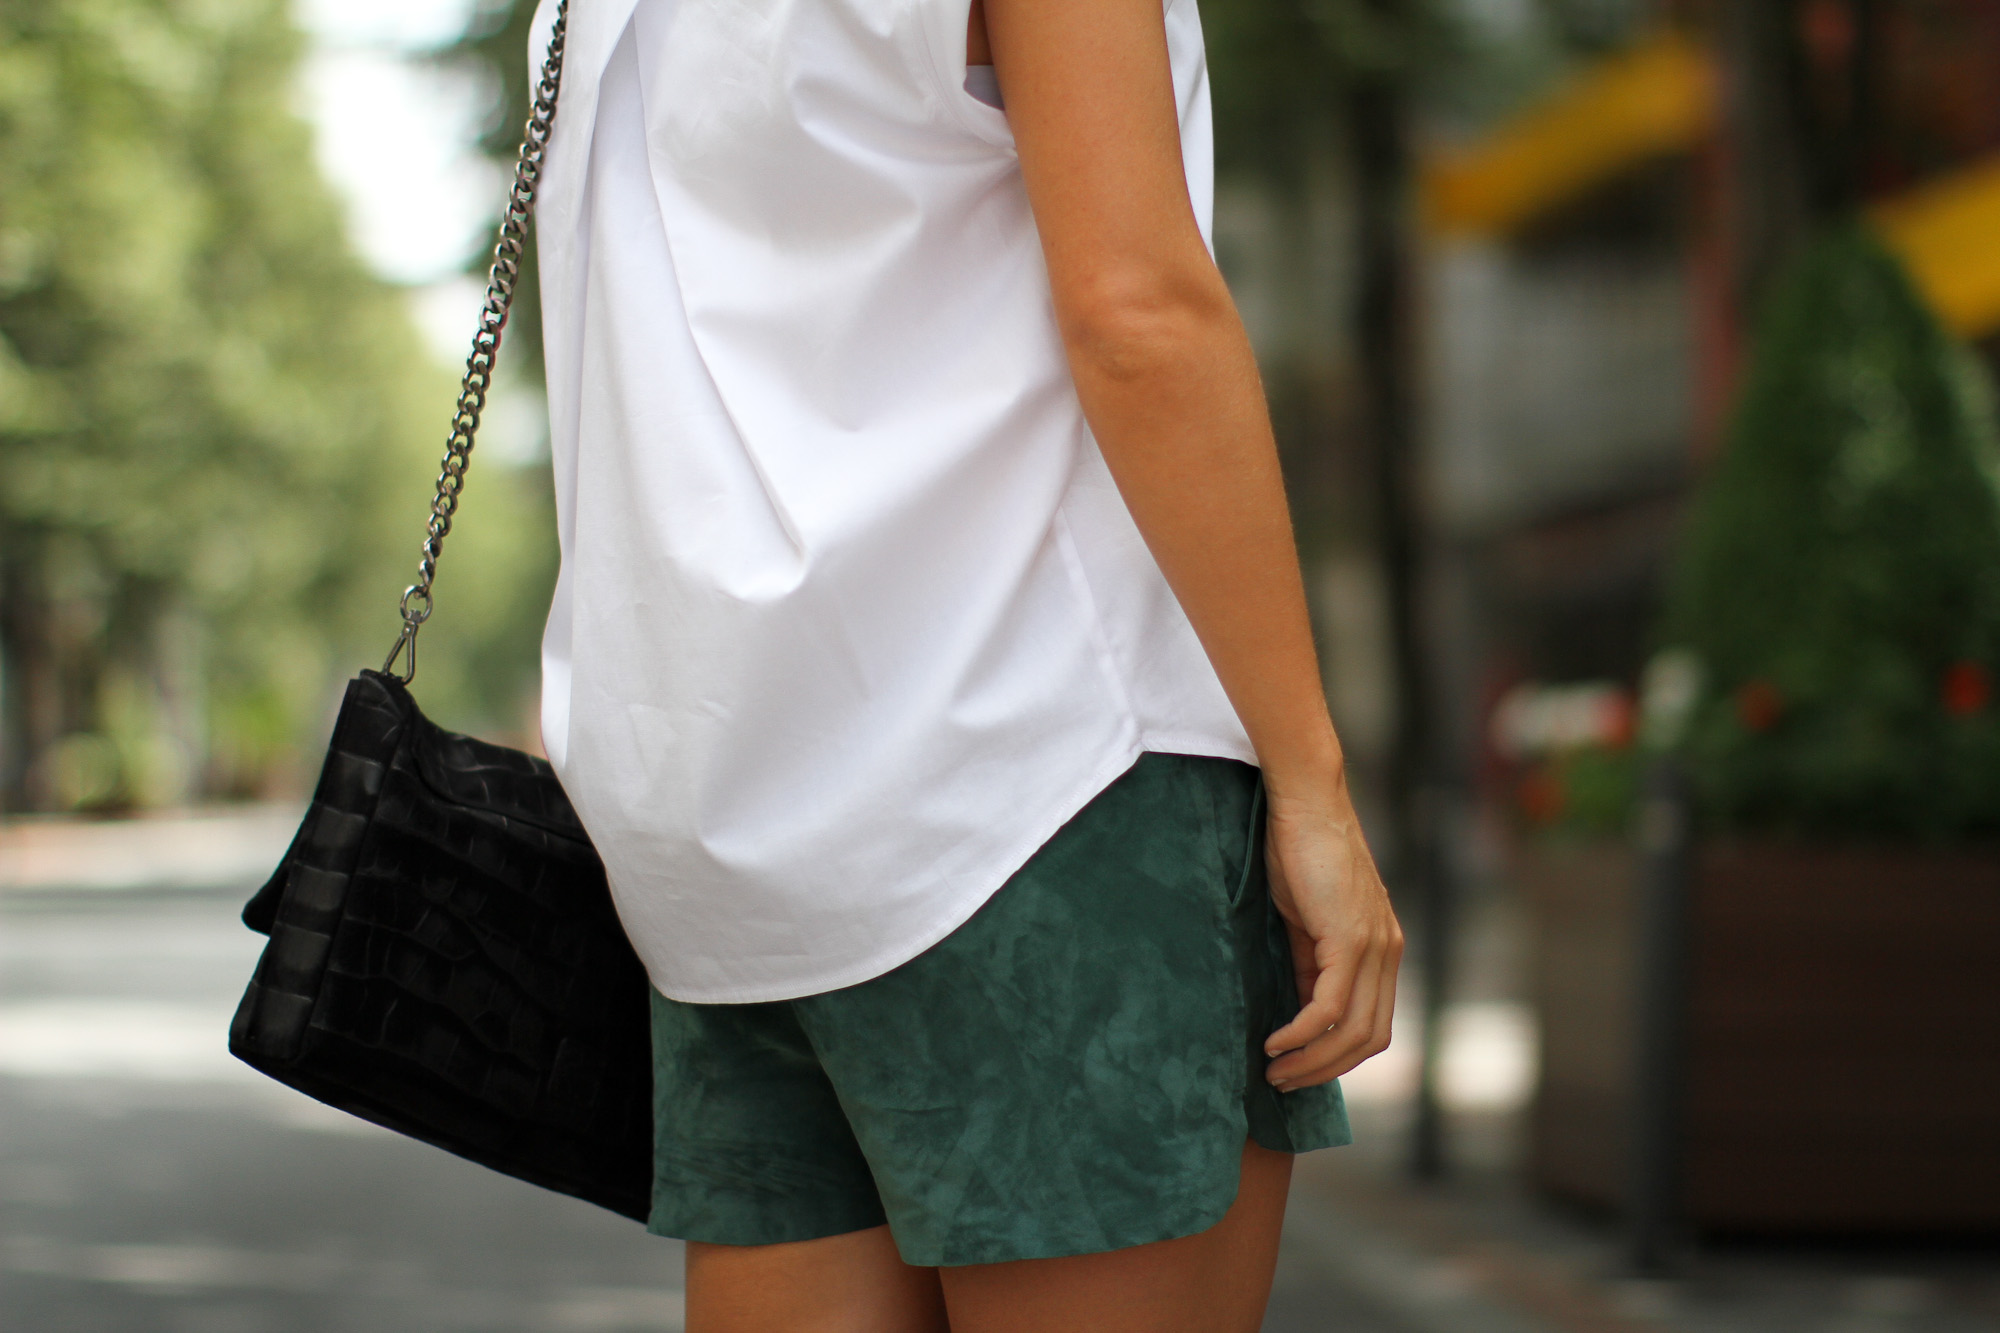 Clochet_h&m_trend_suede_running_shorts_white_platforms_-2